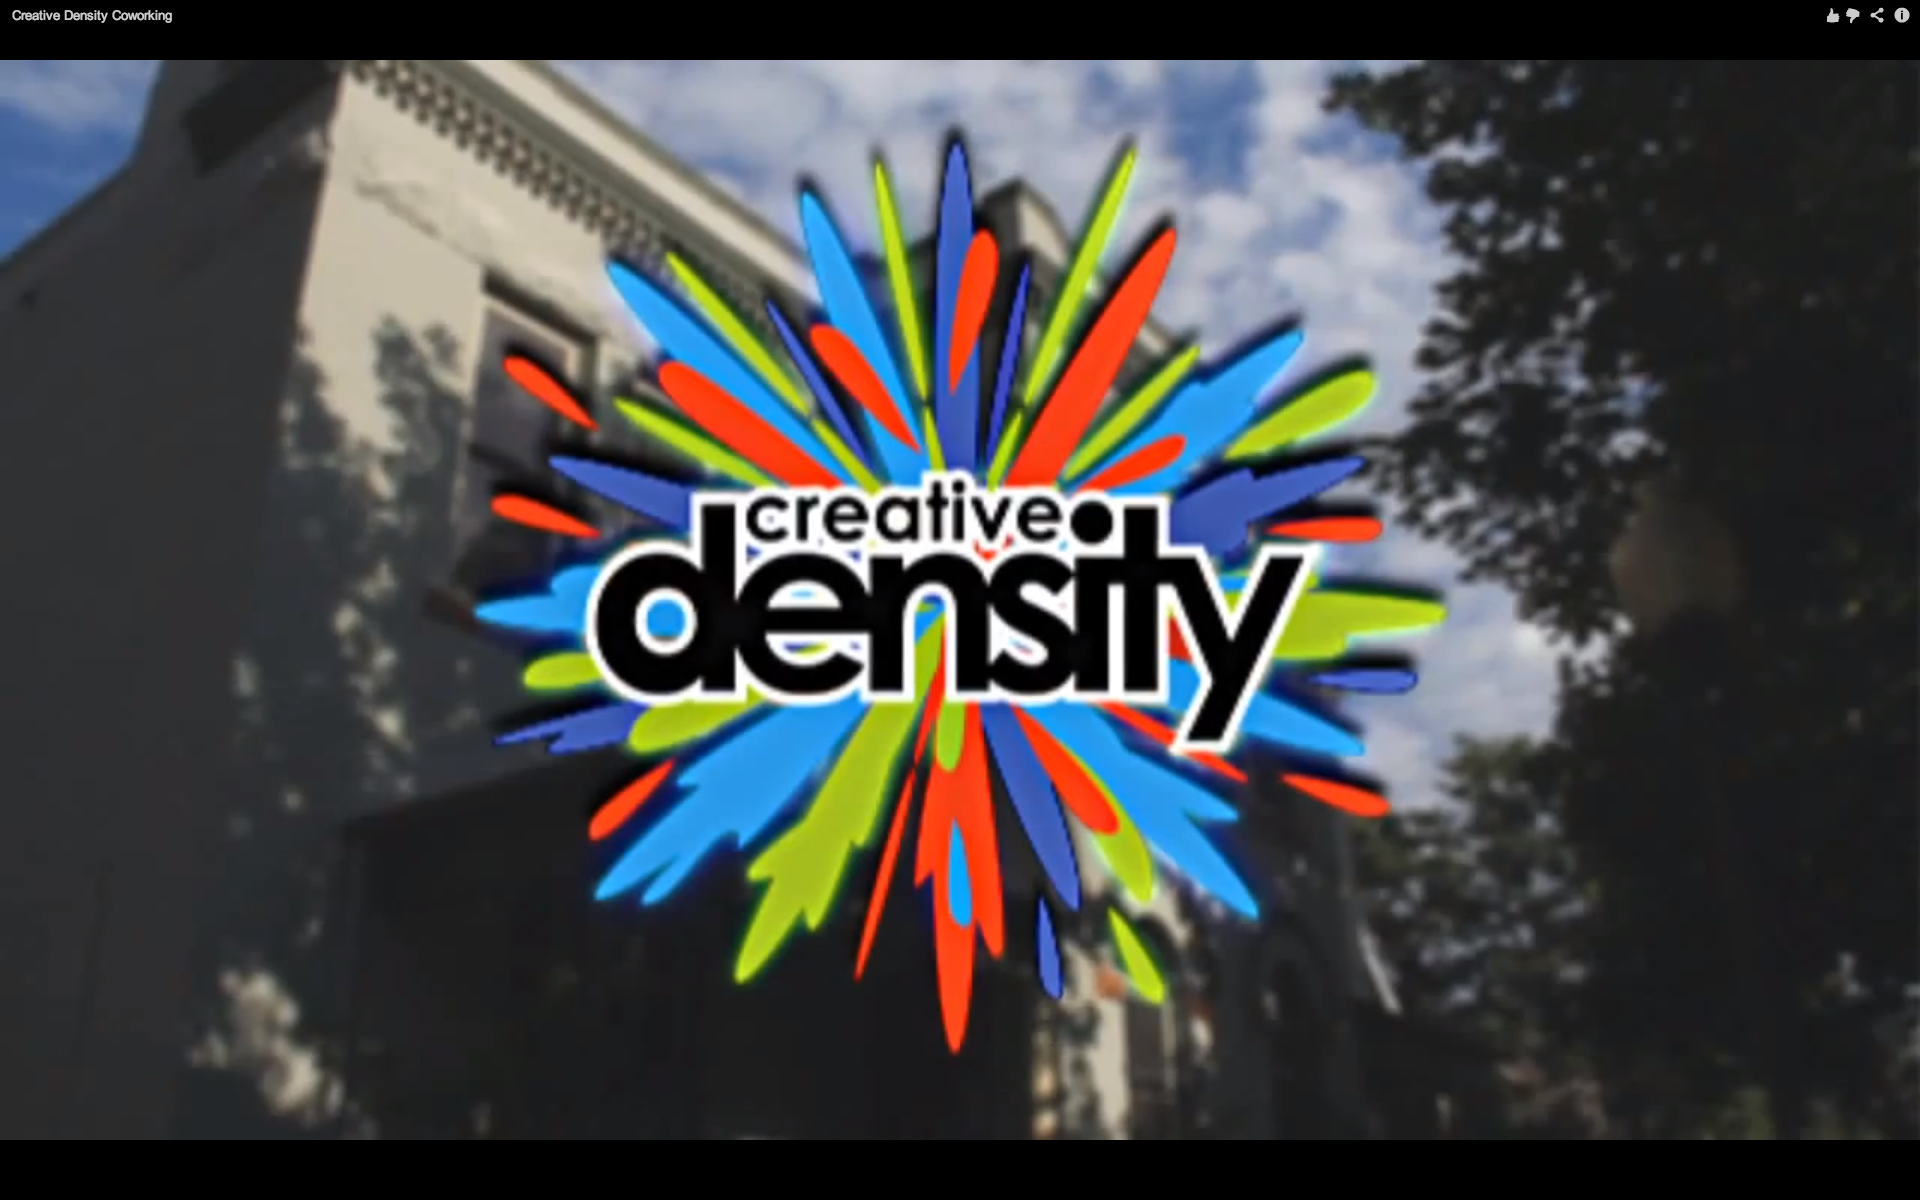 Creative Density Co-working